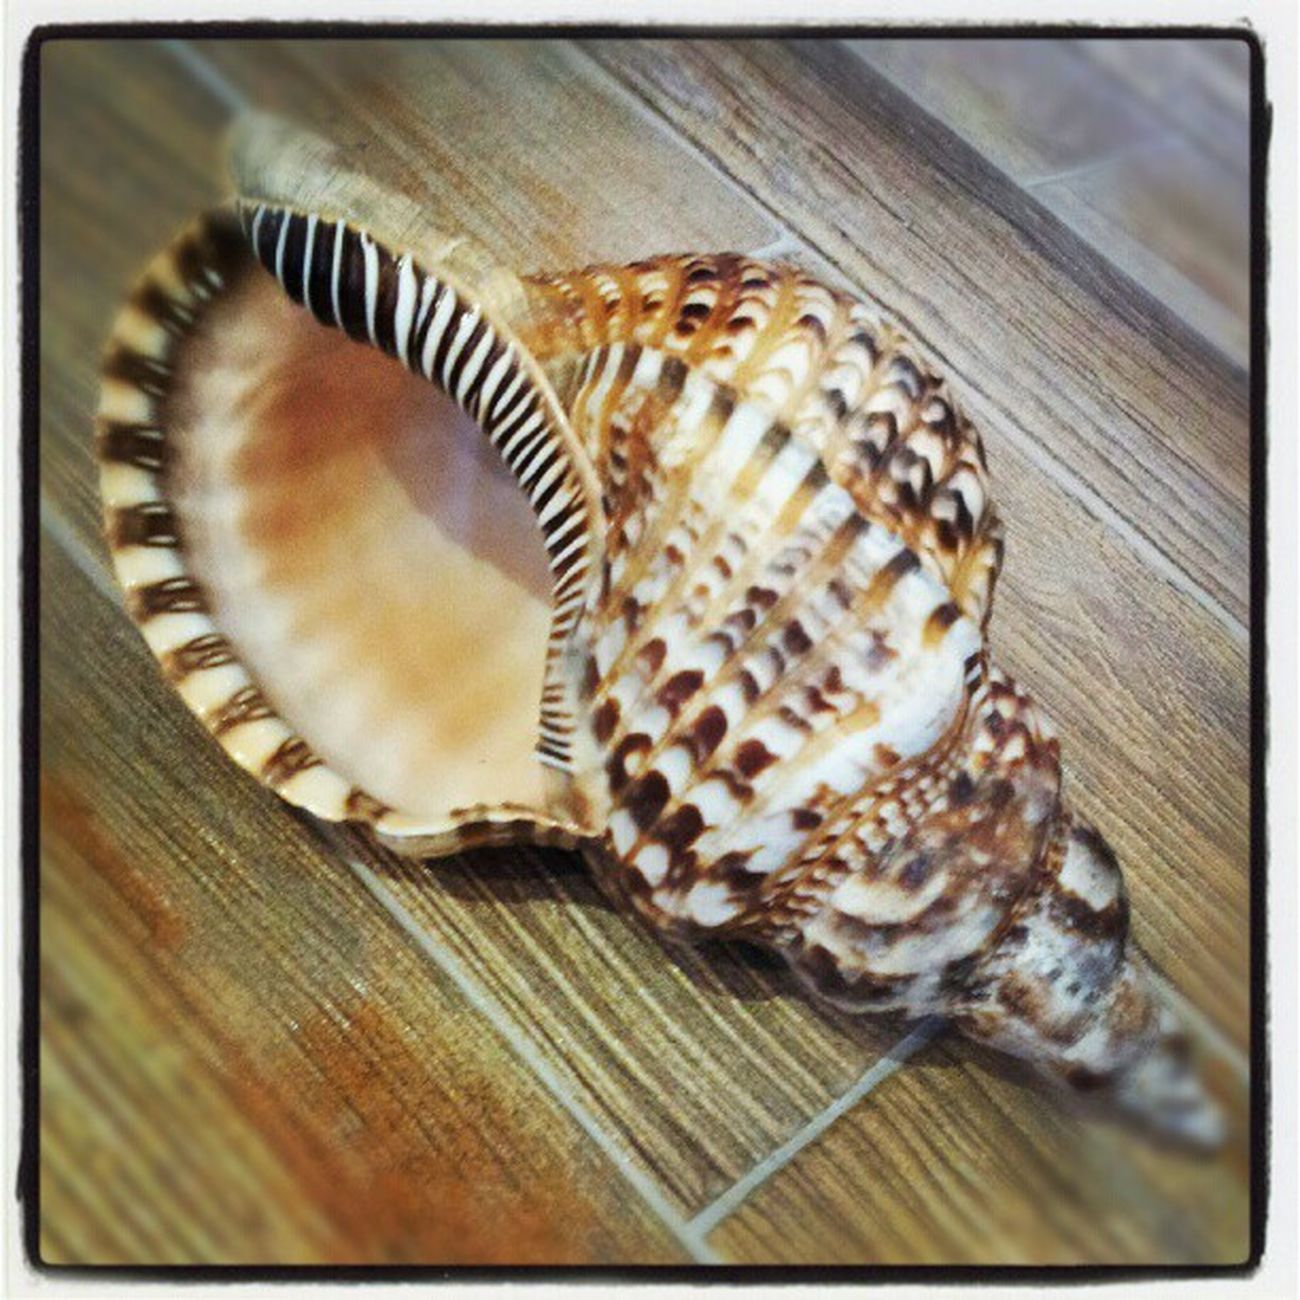 Trumpet Conchshell Shell Shelling Iheartshelling seacreature unique niceone picoftheday seatreasure treasures